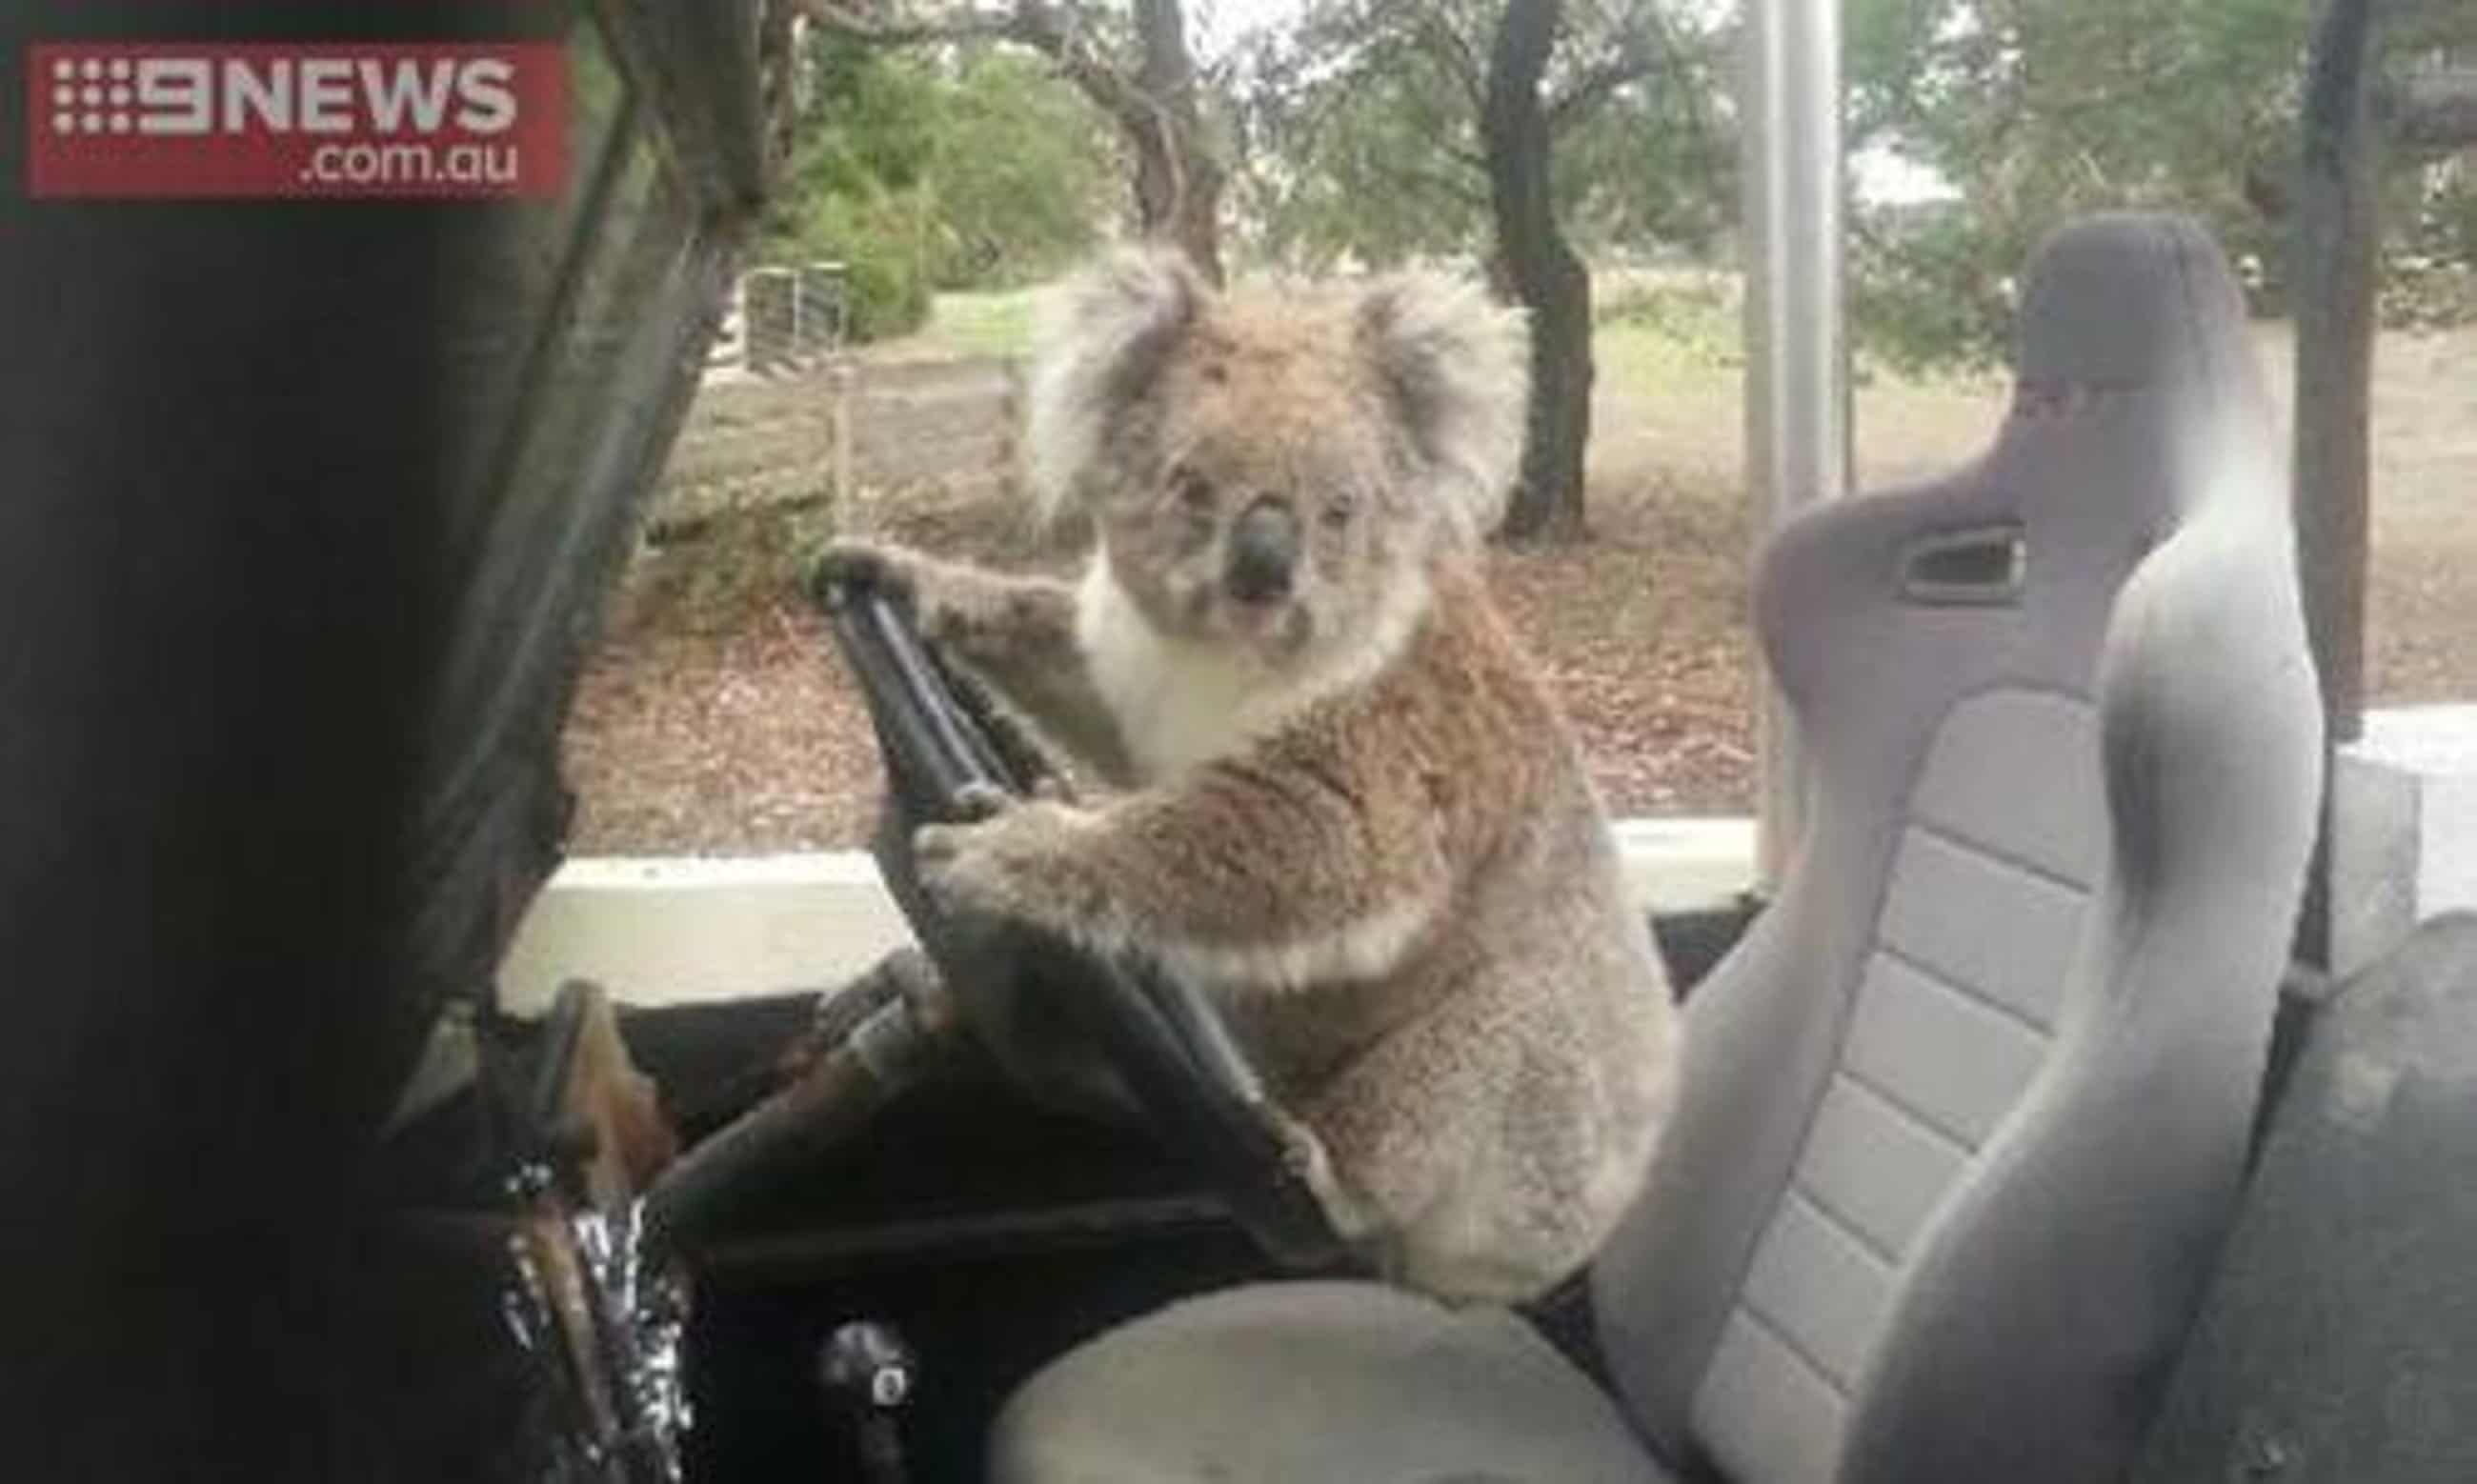 Schoolboy finds koala 'trying to drive' family car – in pictures